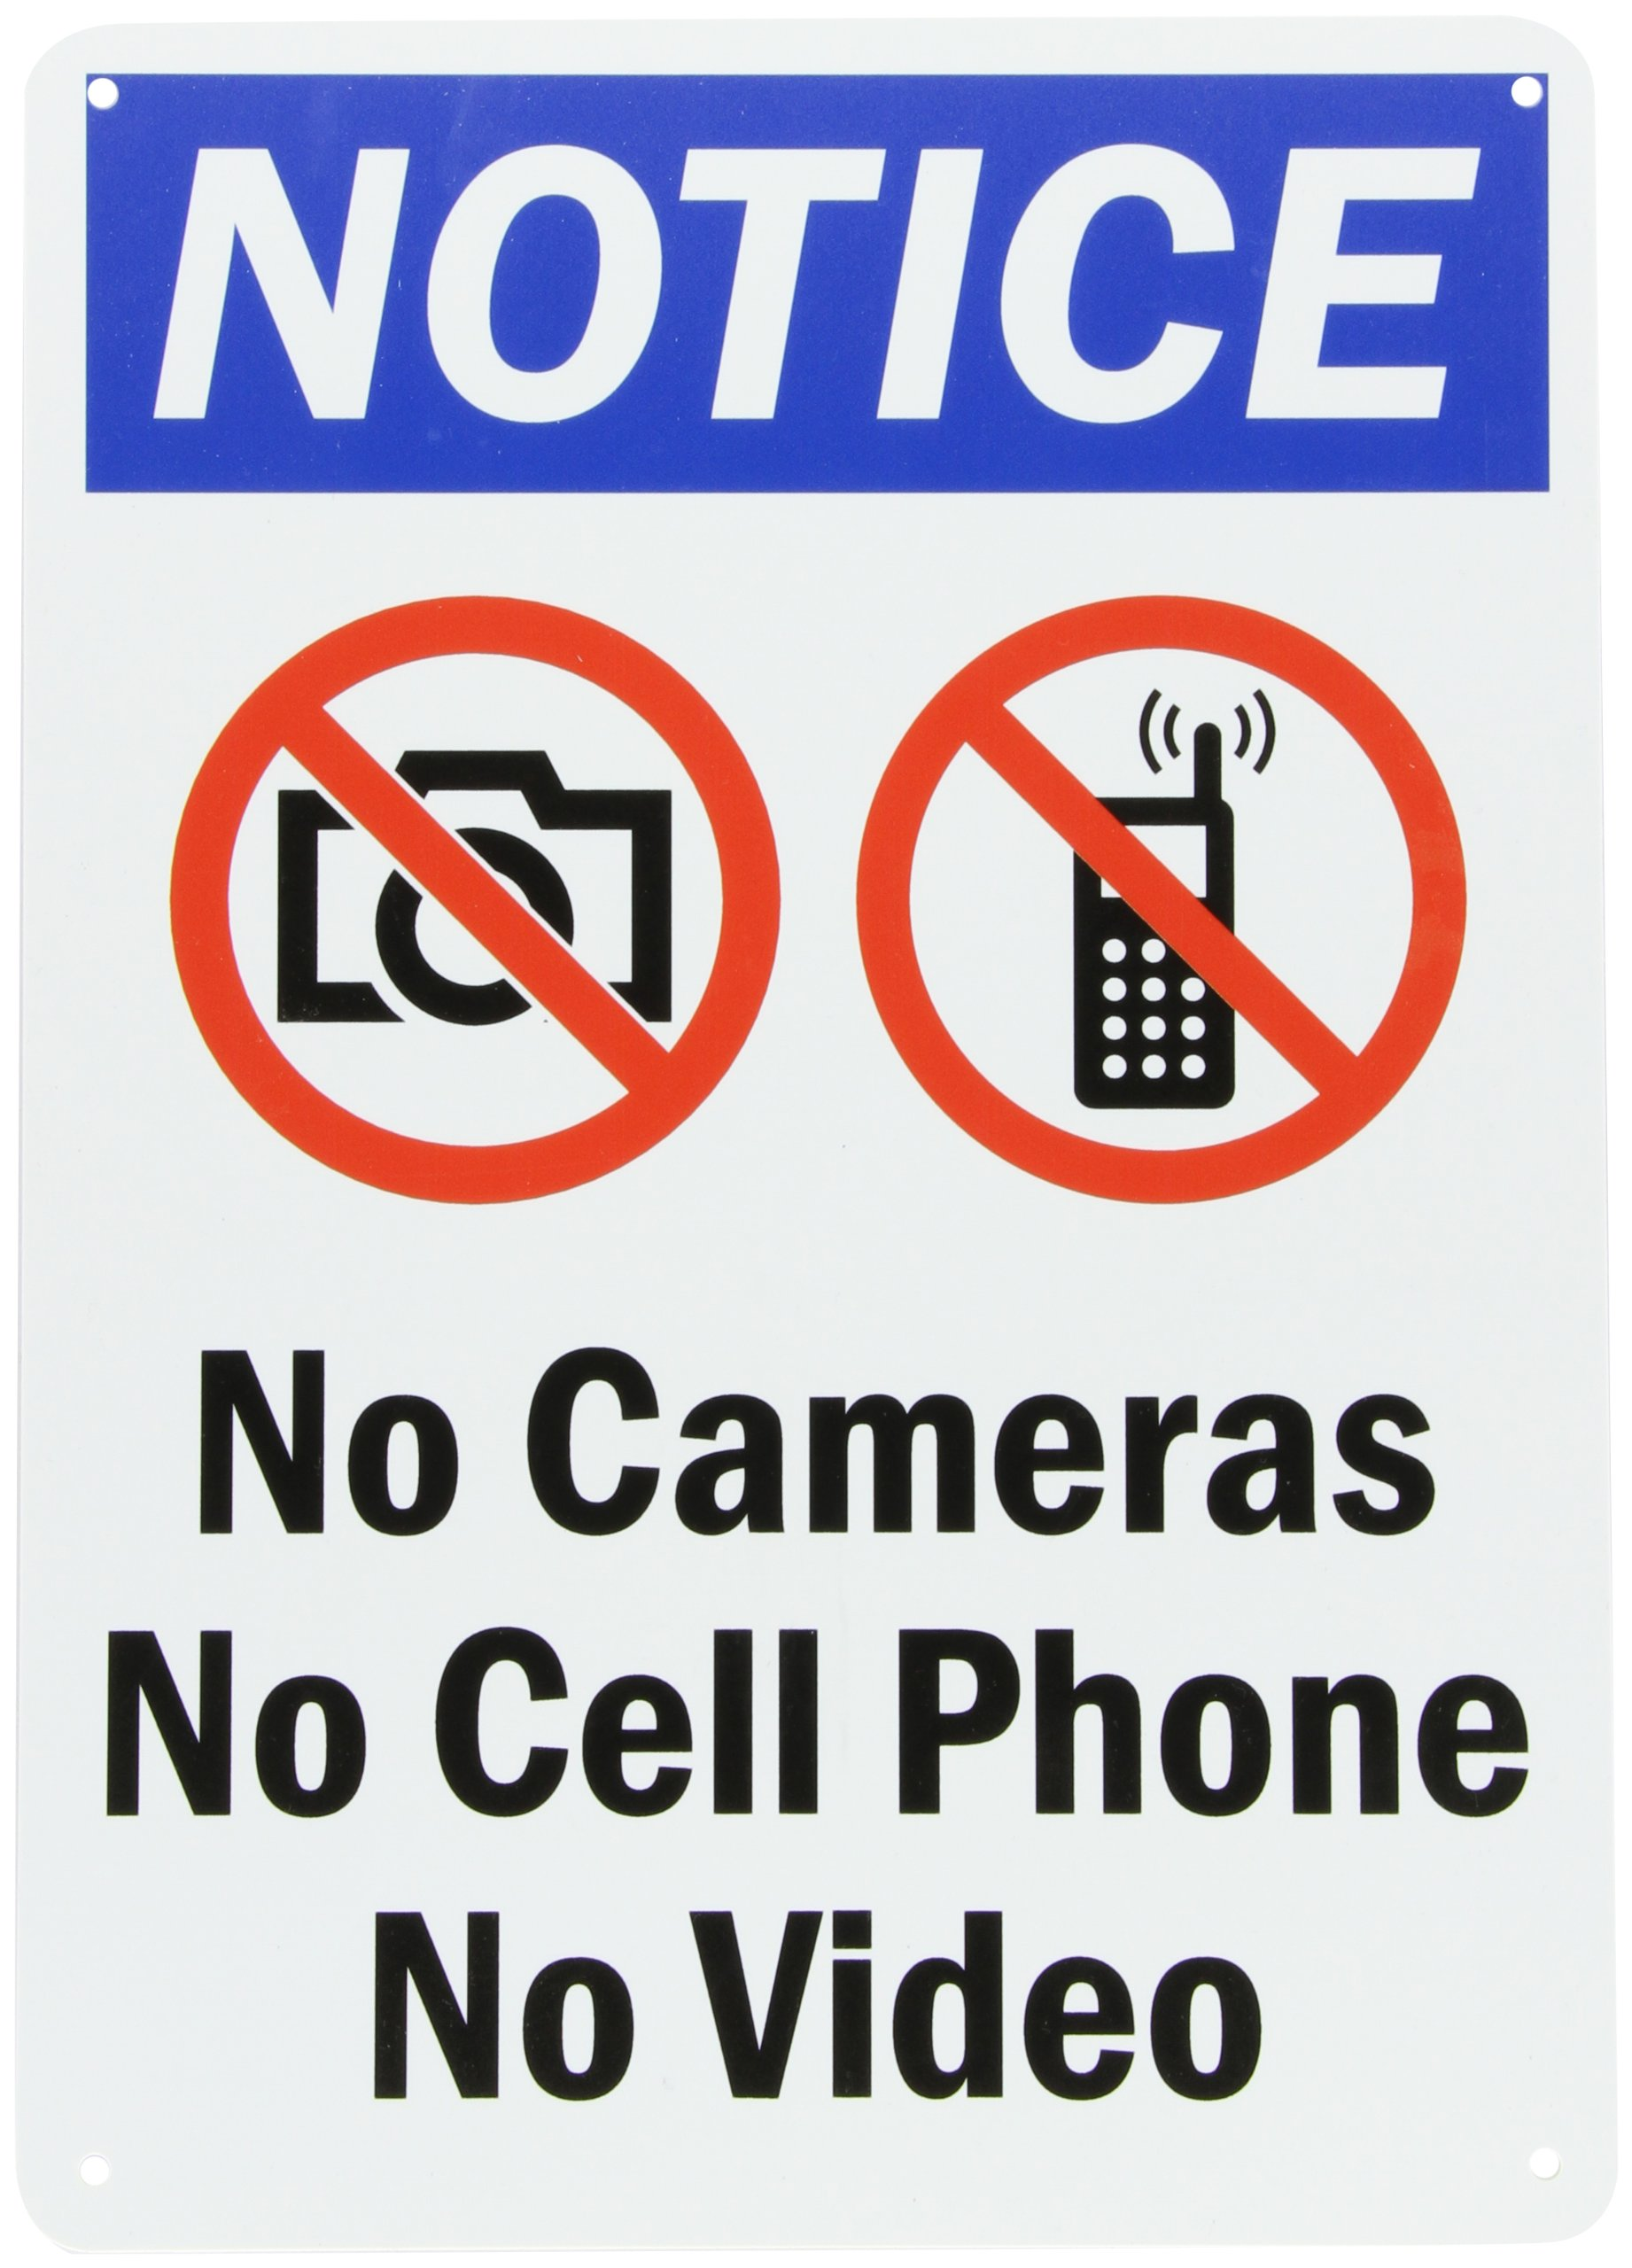 "SmartSign Plastic Sign, Legend ""Notice: No Cameras No Cell Phone No Video"" with Graphic, 14"" high x 10"" wide, Black/Blue/Red on White"